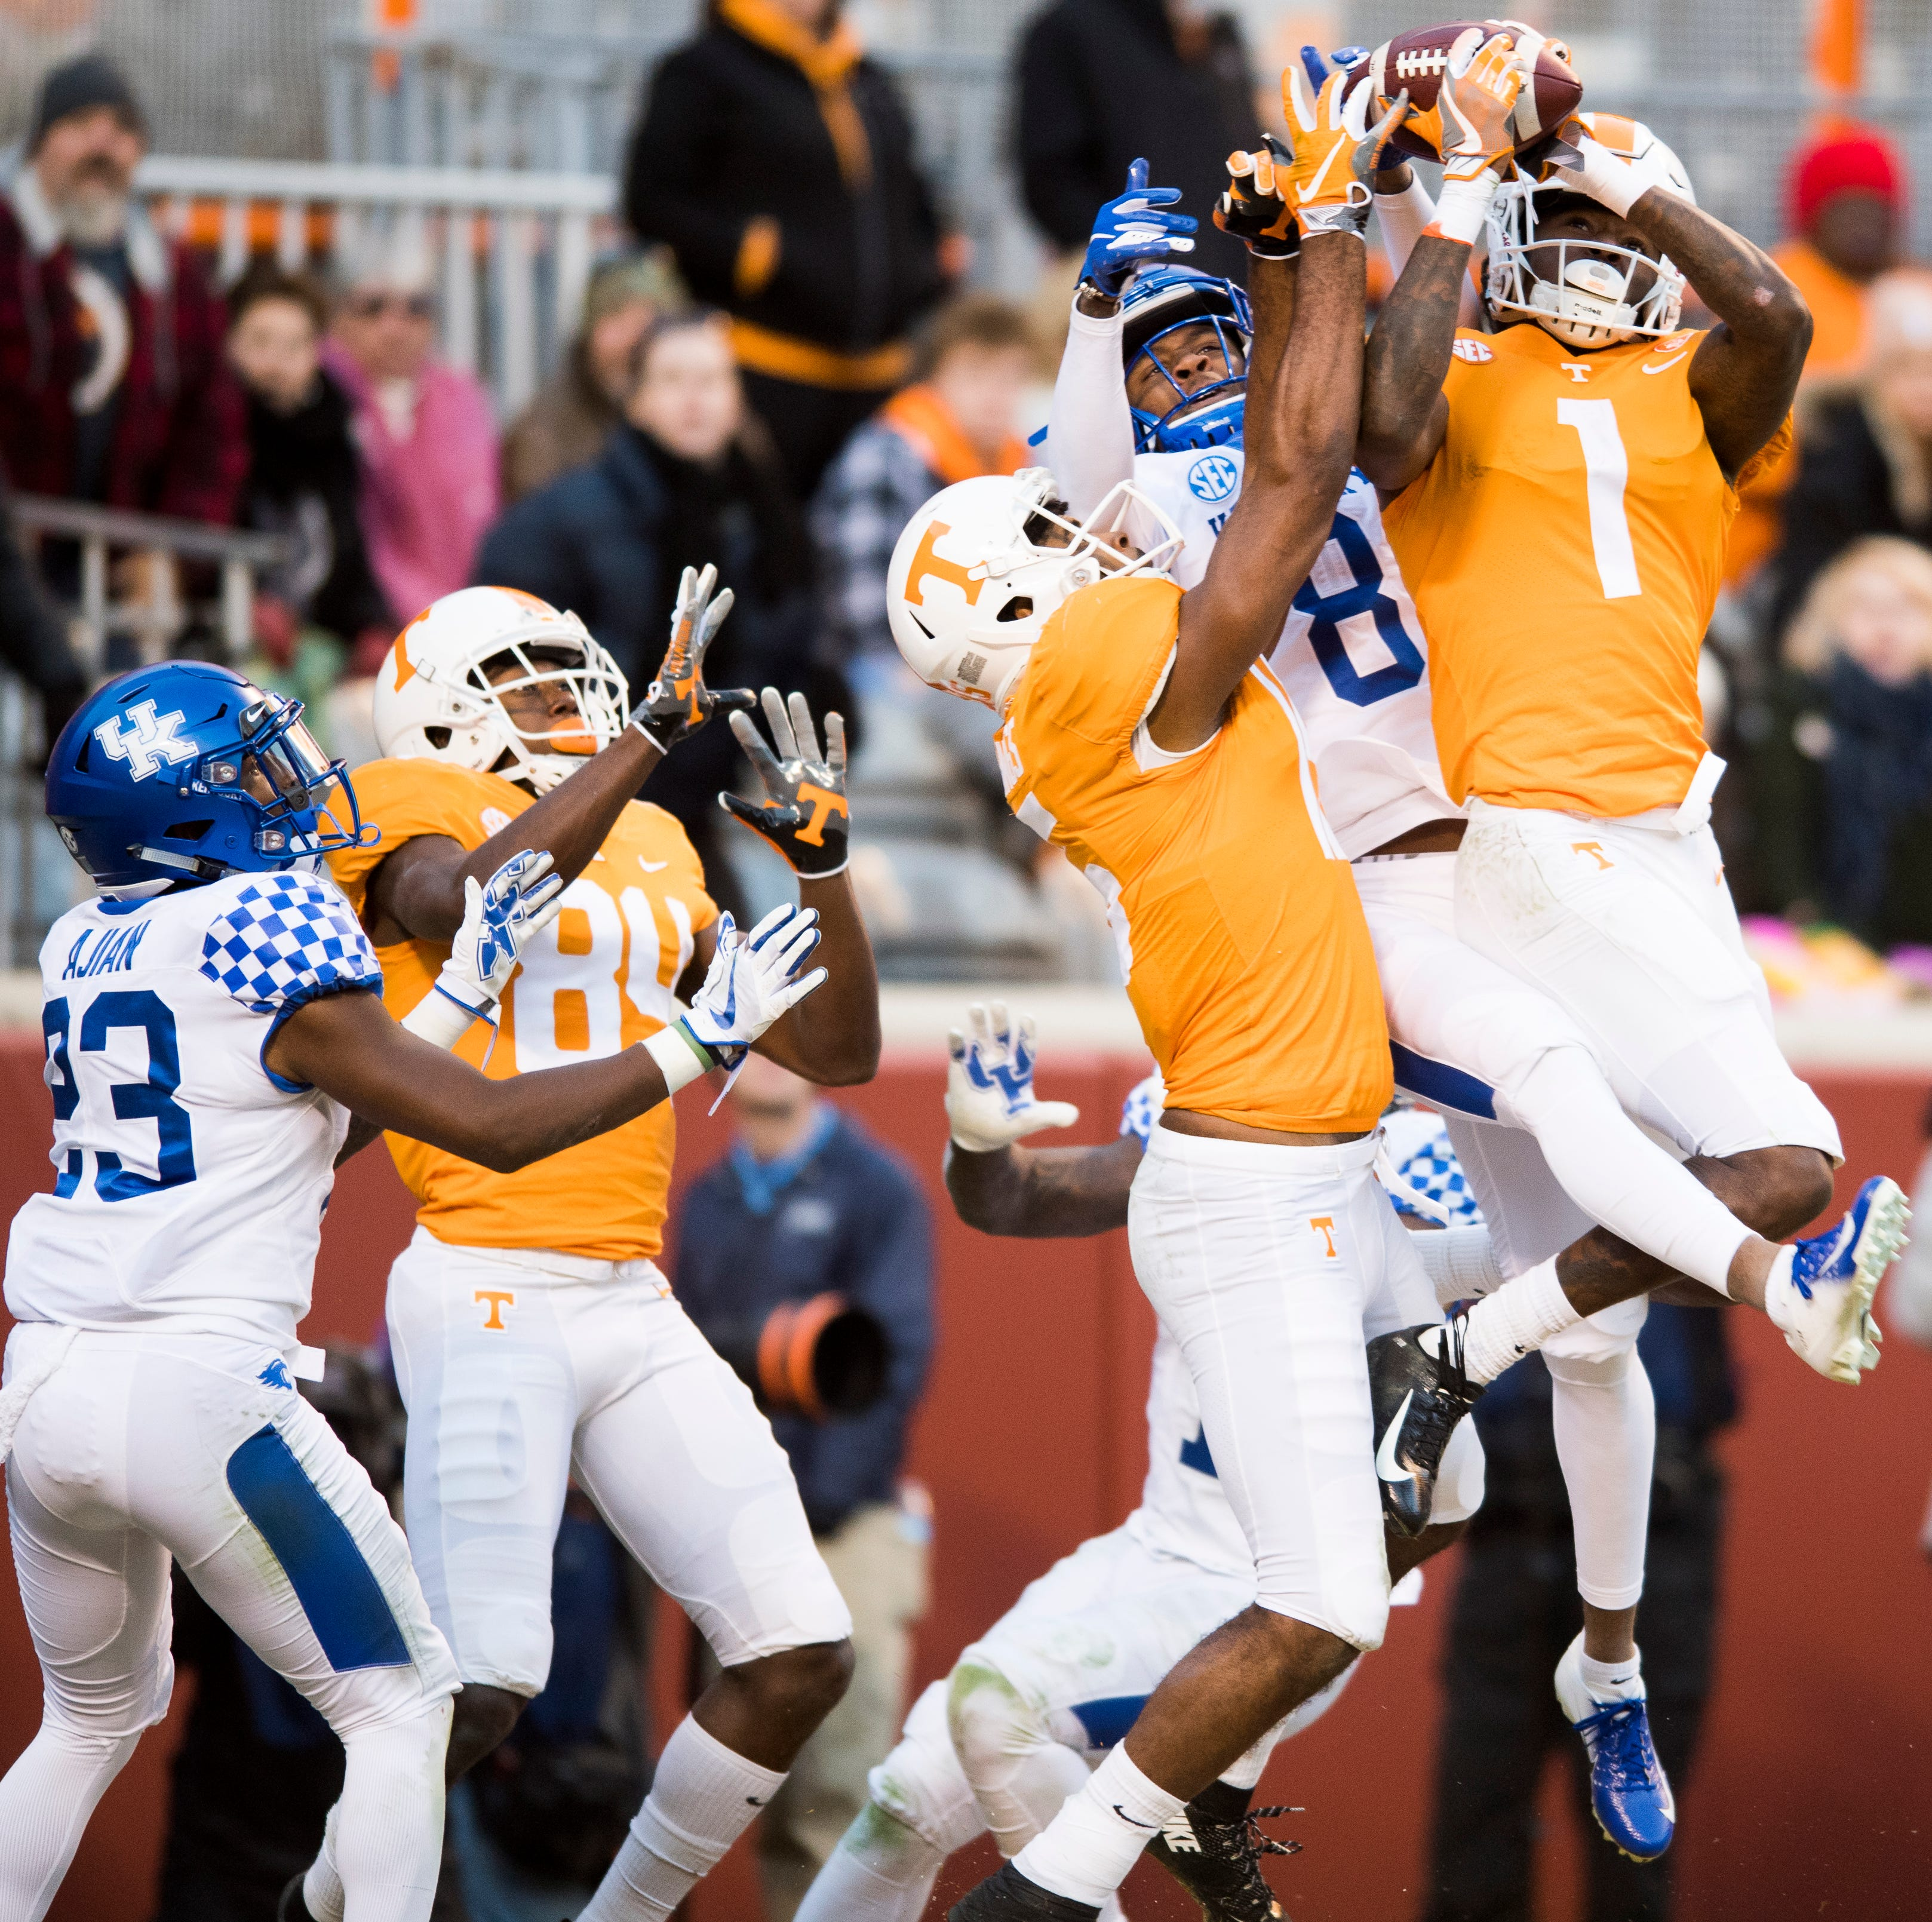 UT Vols football, Jeremy Pruitt point to future with upset of Kentucky — but enjoy the present